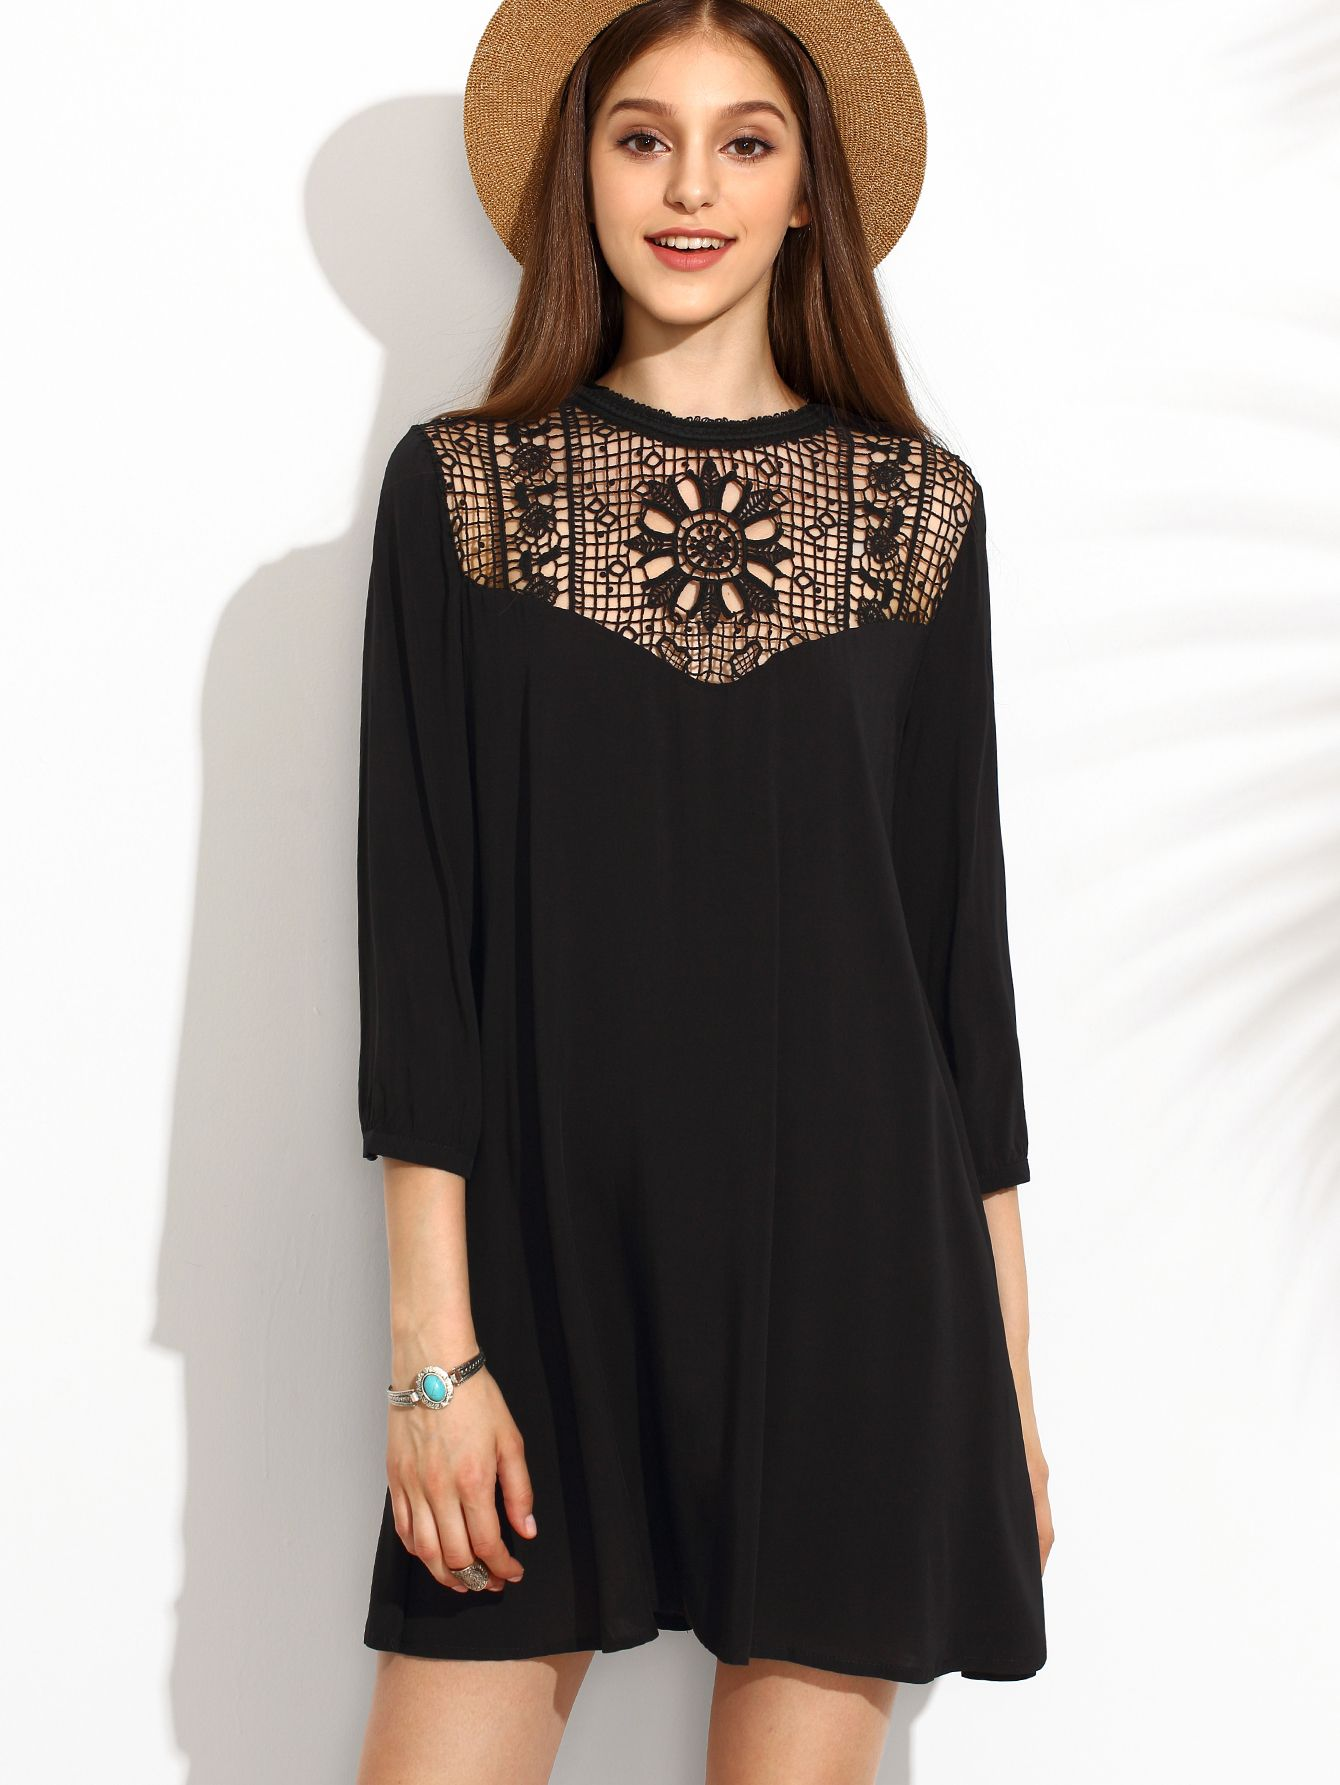 061469da6f4 Shop Black Crochet Front Tunic Dress online. SheIn offers Black Crochet  Front Tunic Dress & more to fit your fashionable needs.